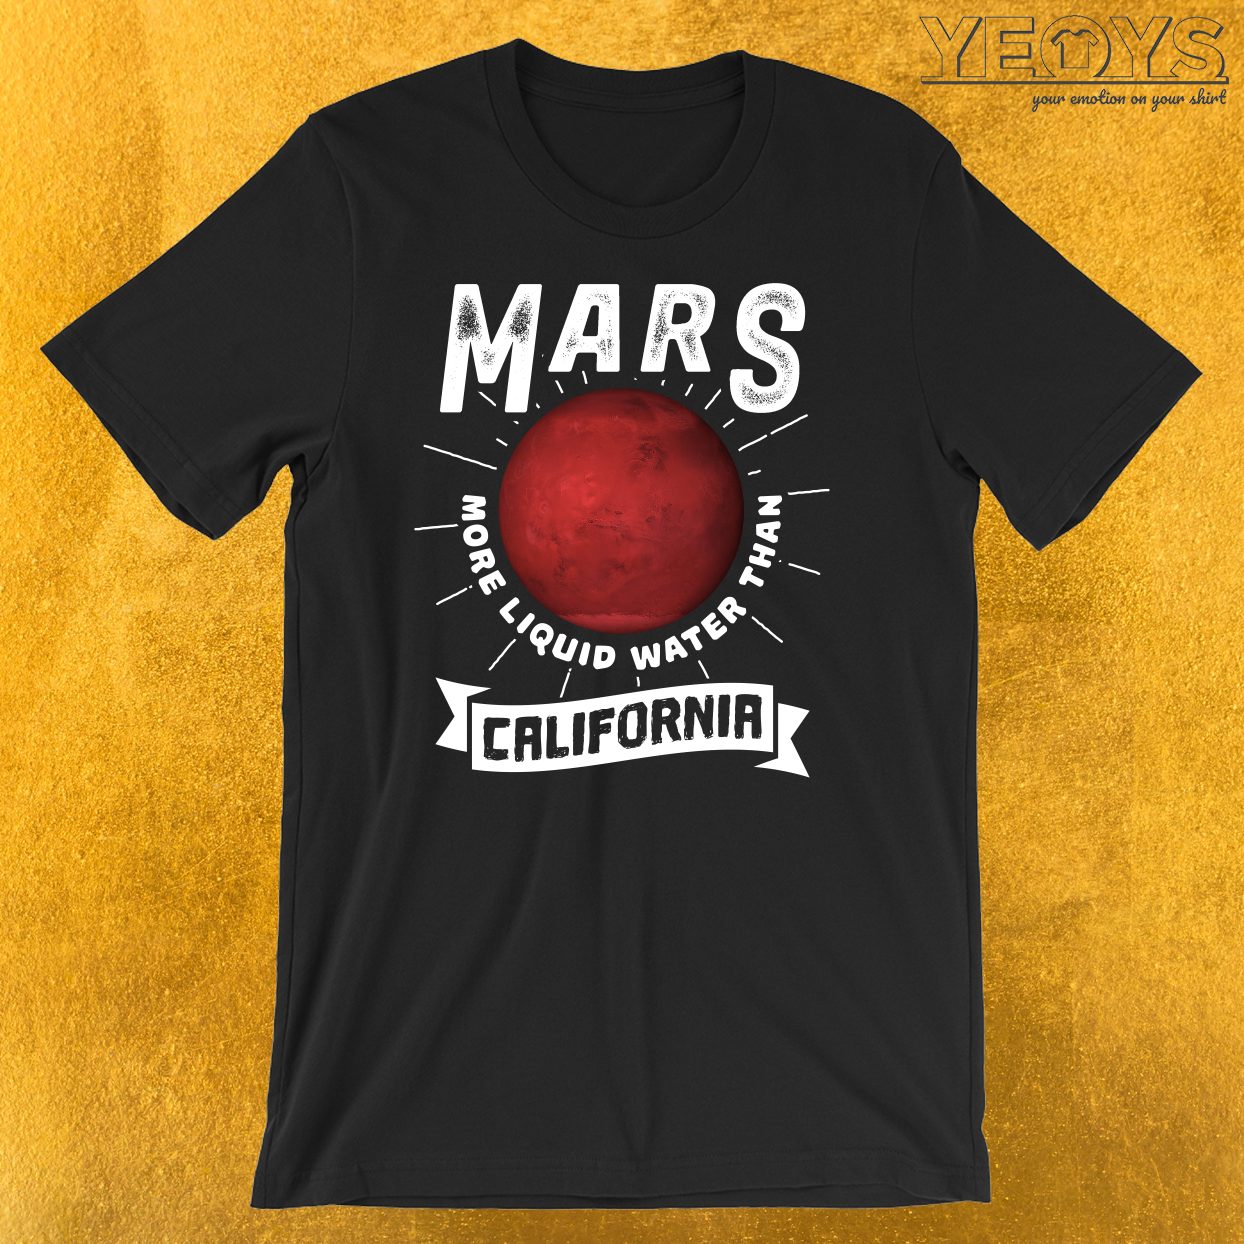 Mars More Liquid Water Than California T-Shirt